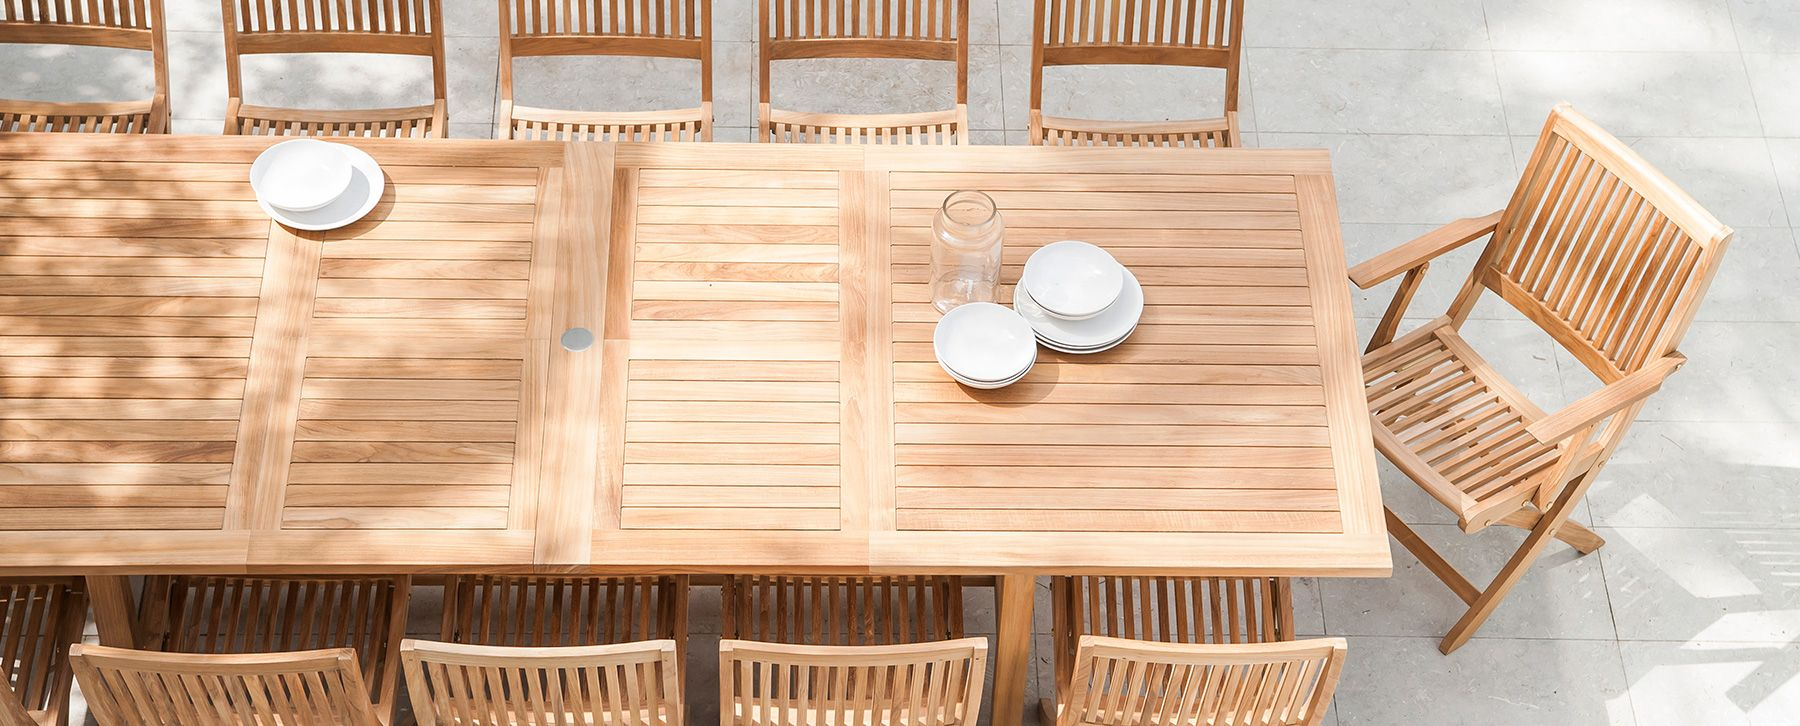 Becker Dining Table Extendable Couture Outdoor